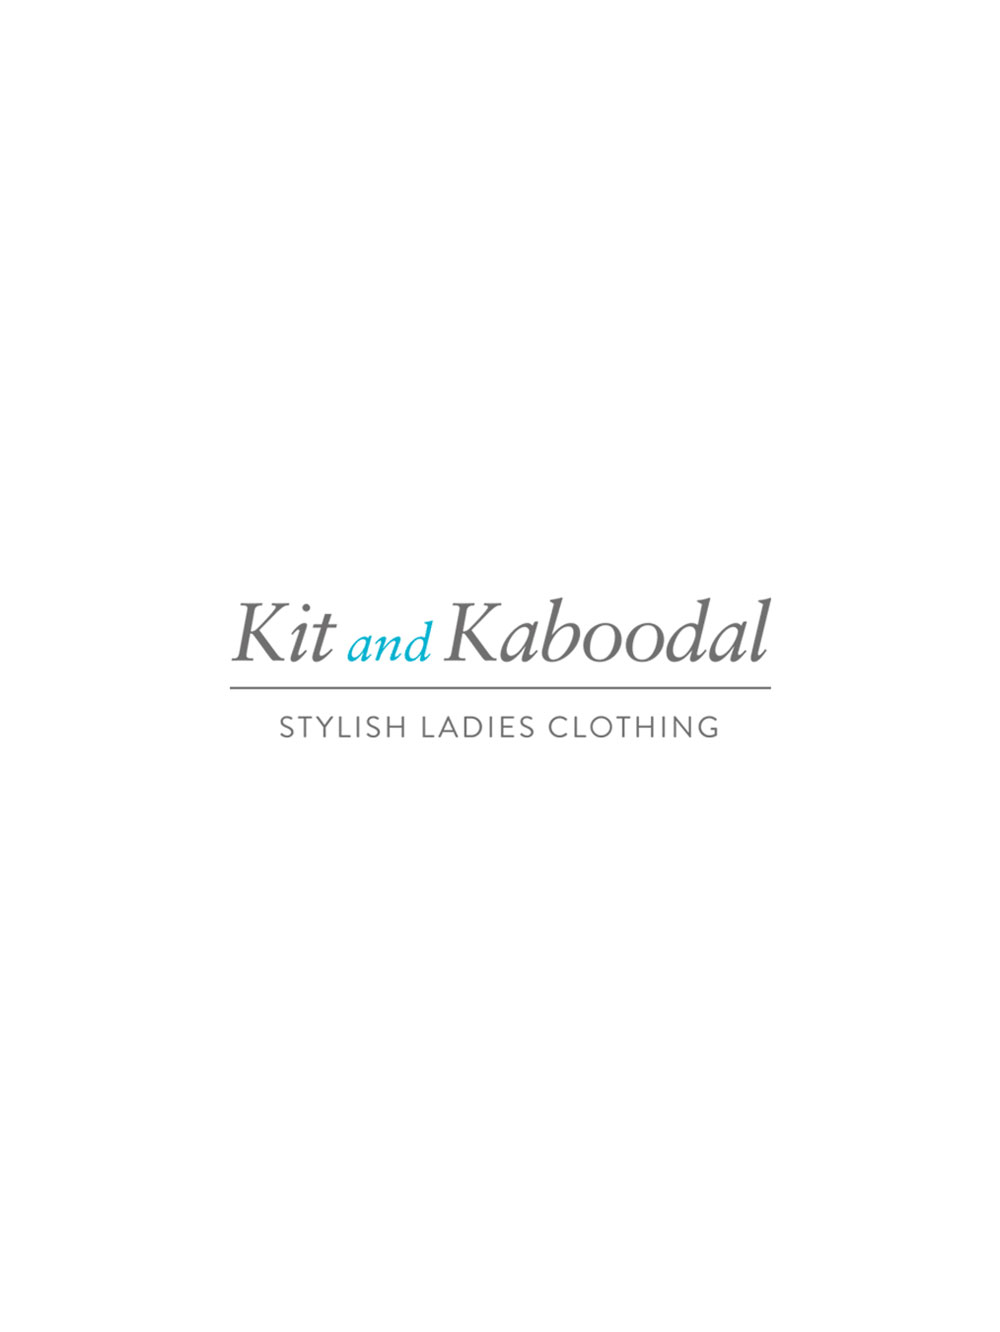 Kit and Kaboodal Windsor Petticoat